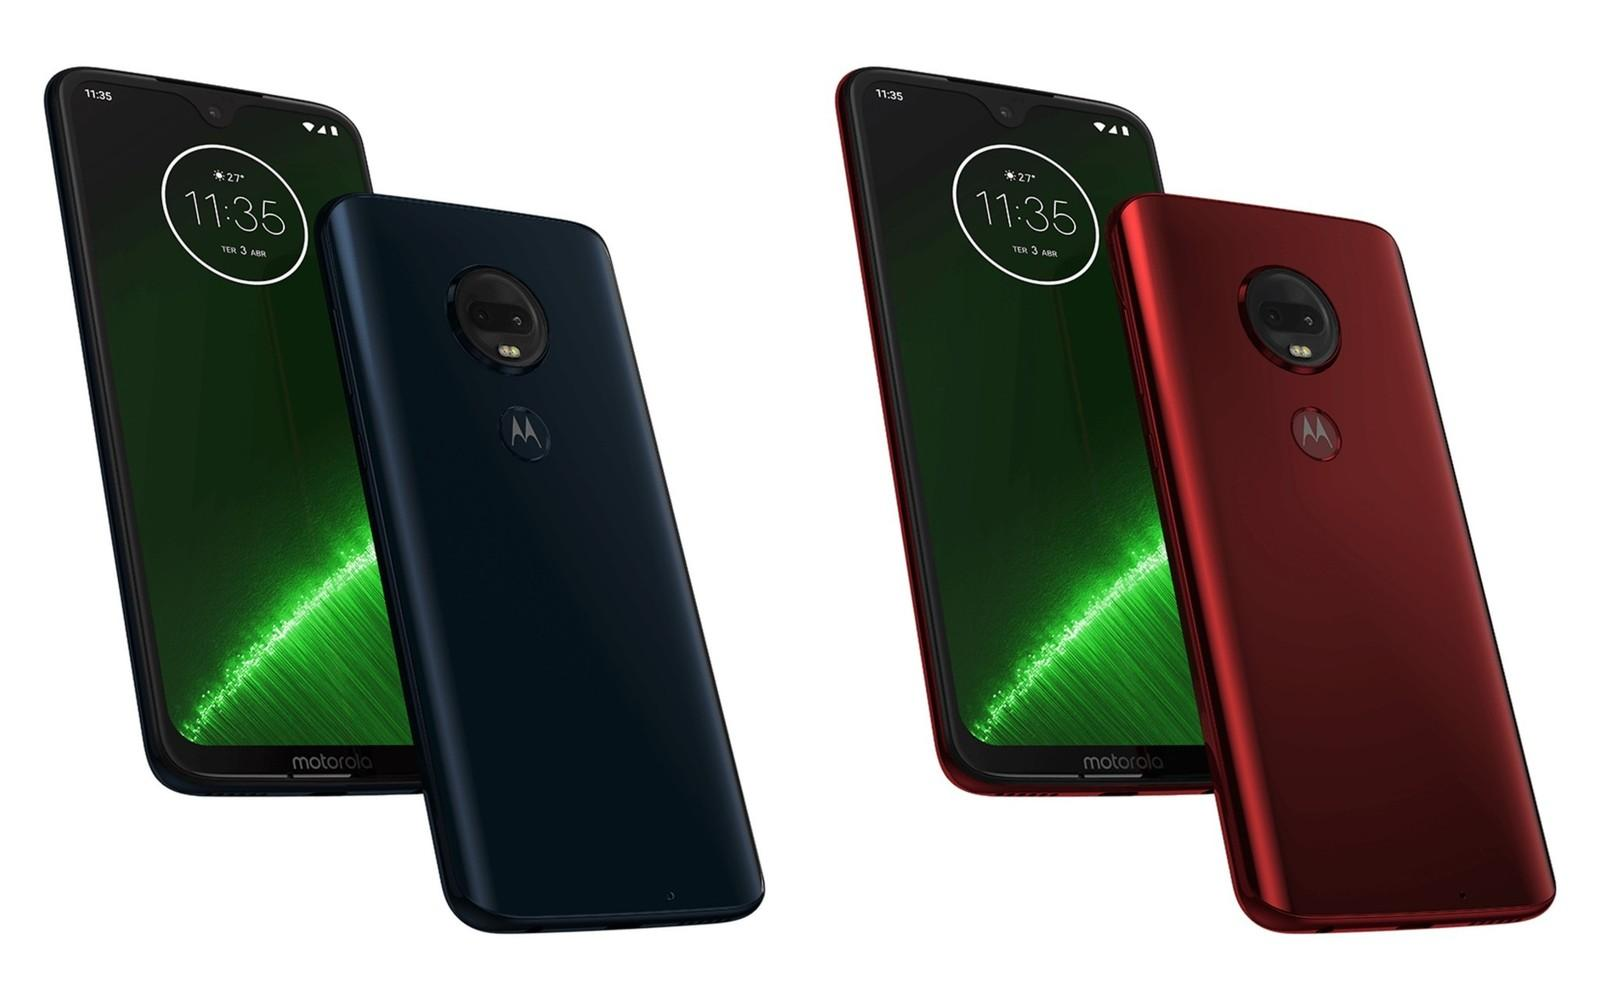 Motorola發布三款G系列主流機型:G7/G7 Play/G7 Power - XFastest - moto-g7-plus-ishan-leak.jpeg